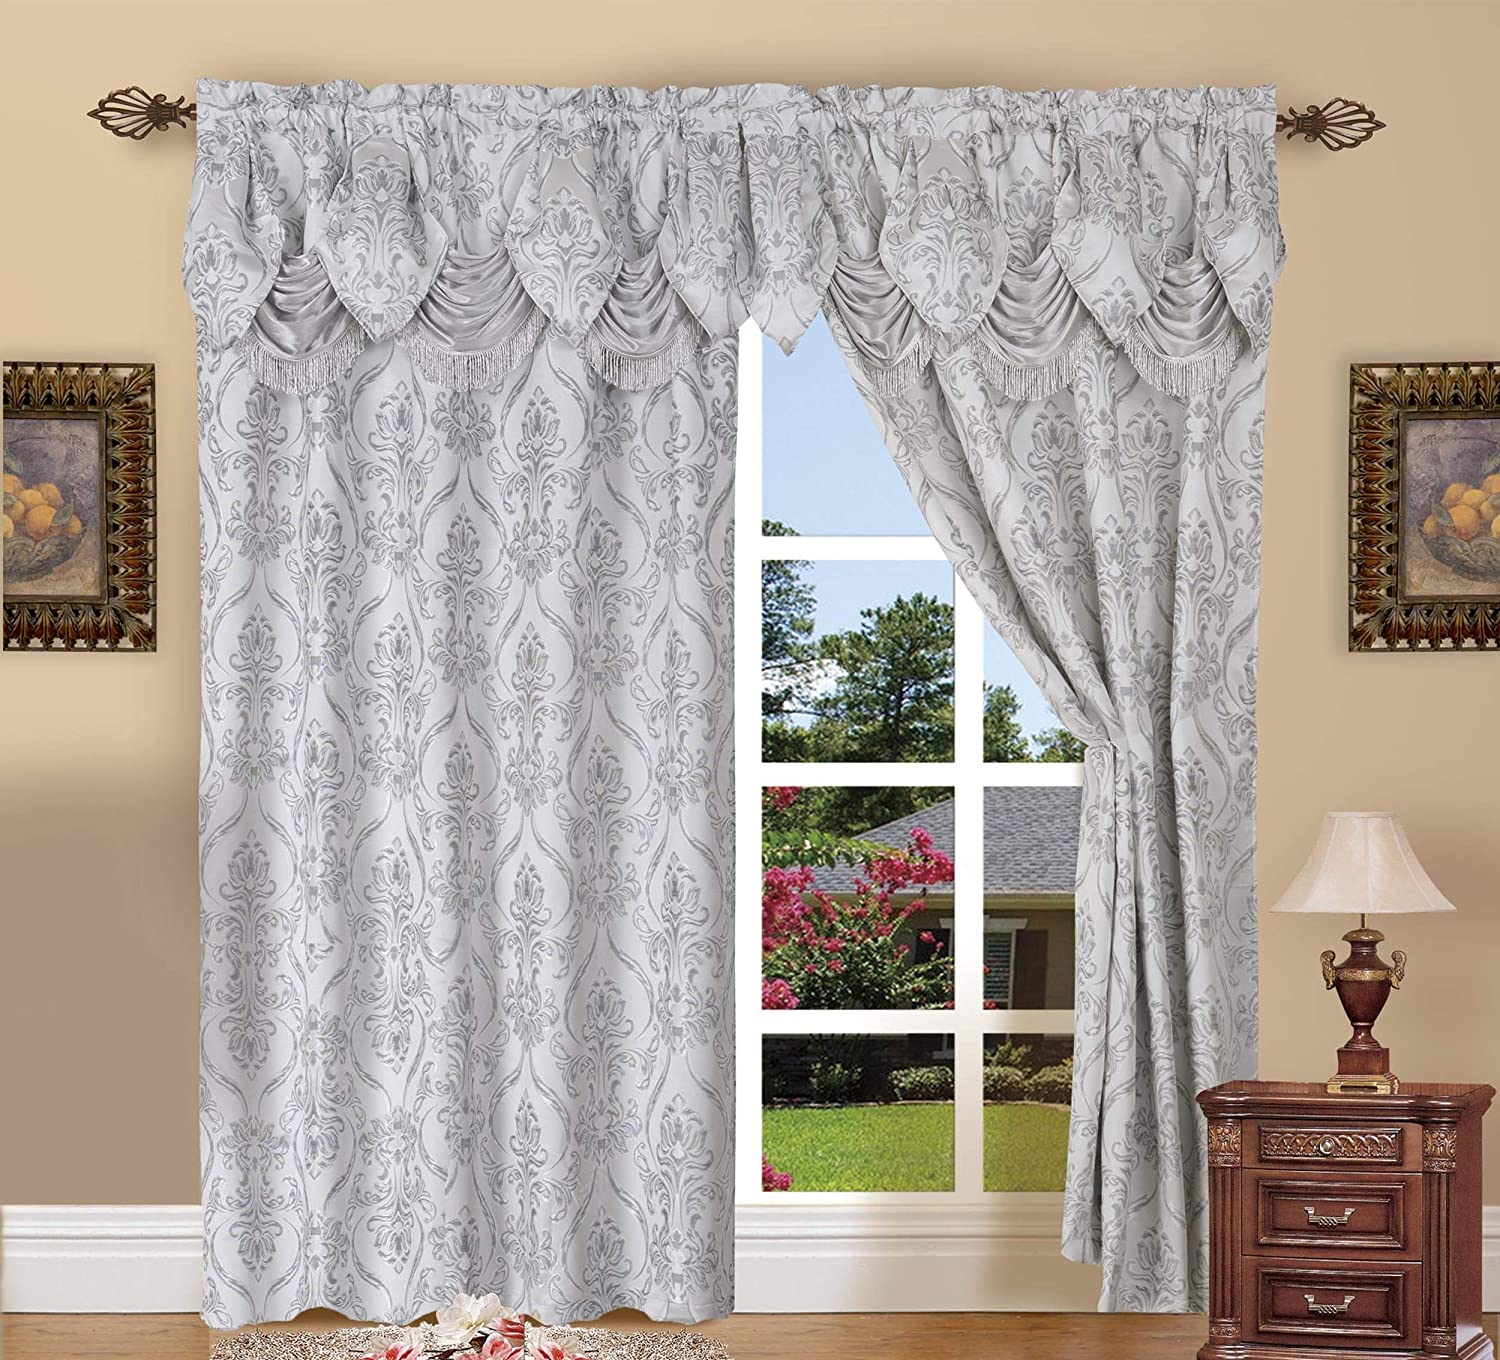 Elegant Comfort Penelopie Jacquard Look Curtain Panel Set with Attached Waterfall Valance, Set of 2 54x84 Inches Silver